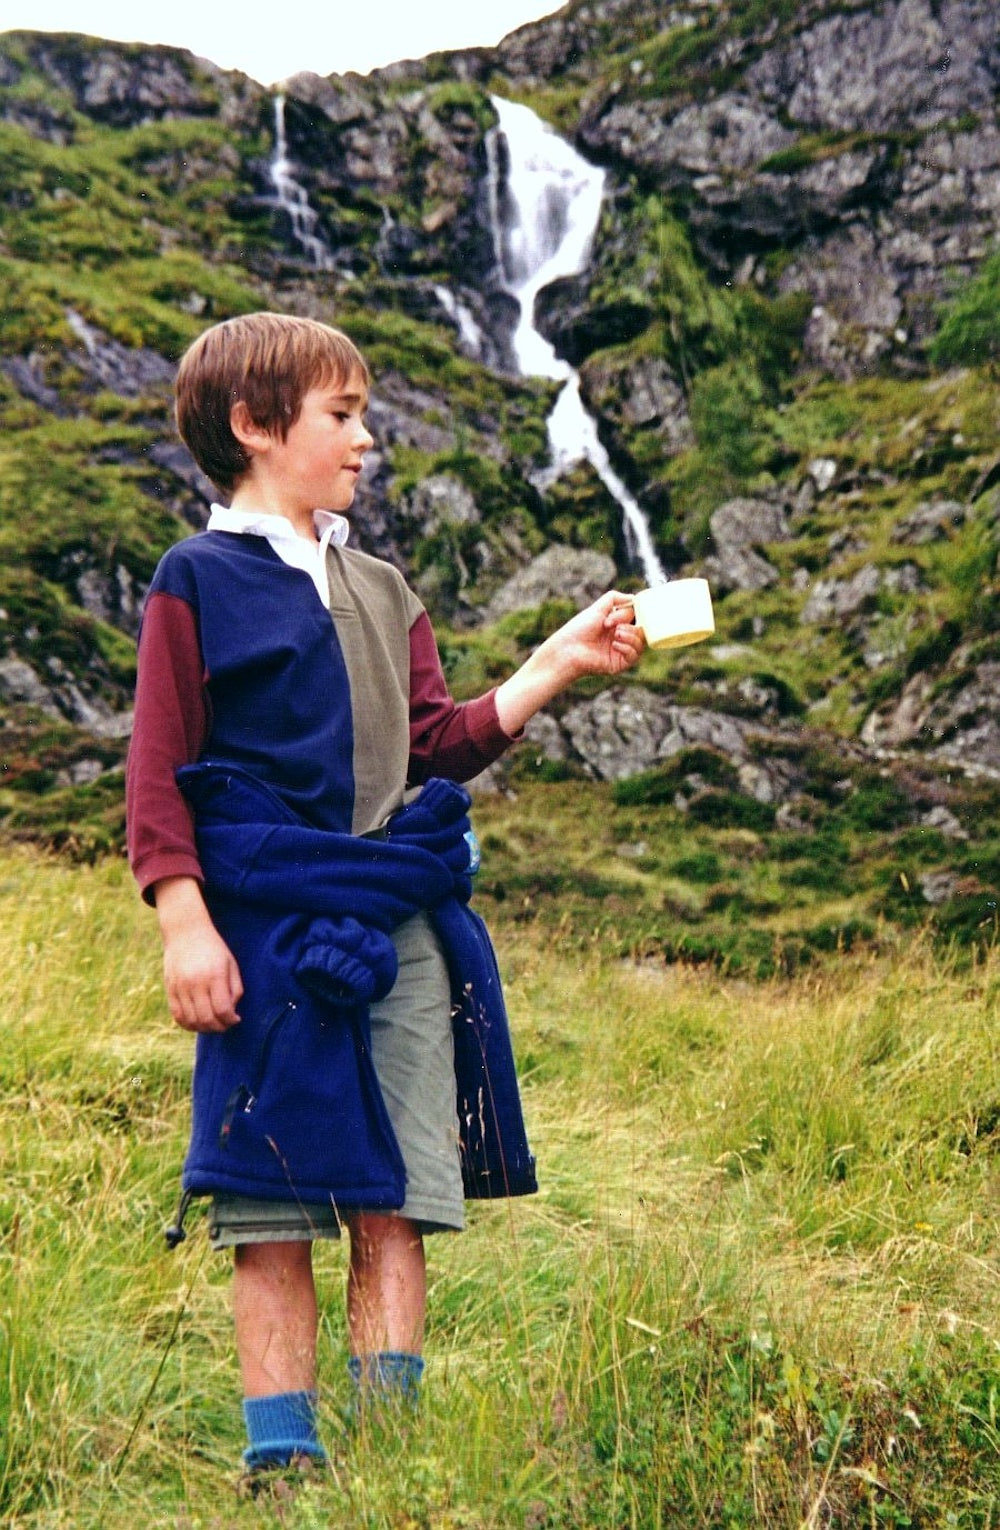 Forced perspective photo of a boy holding a cup with a waterfall pouring into it